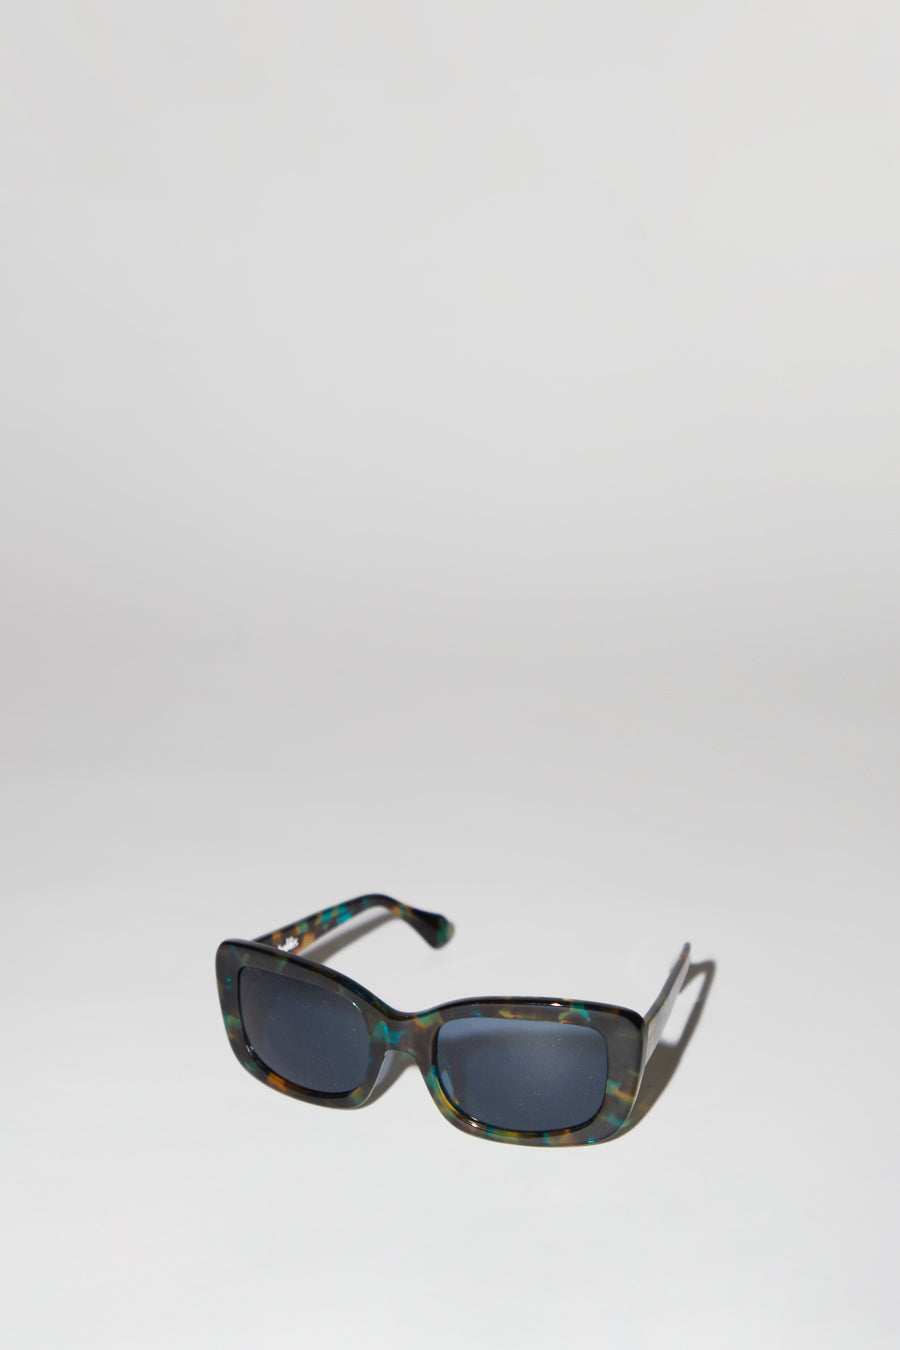 Sun Buddies Junior Sunglasses in Aqua Tortoise